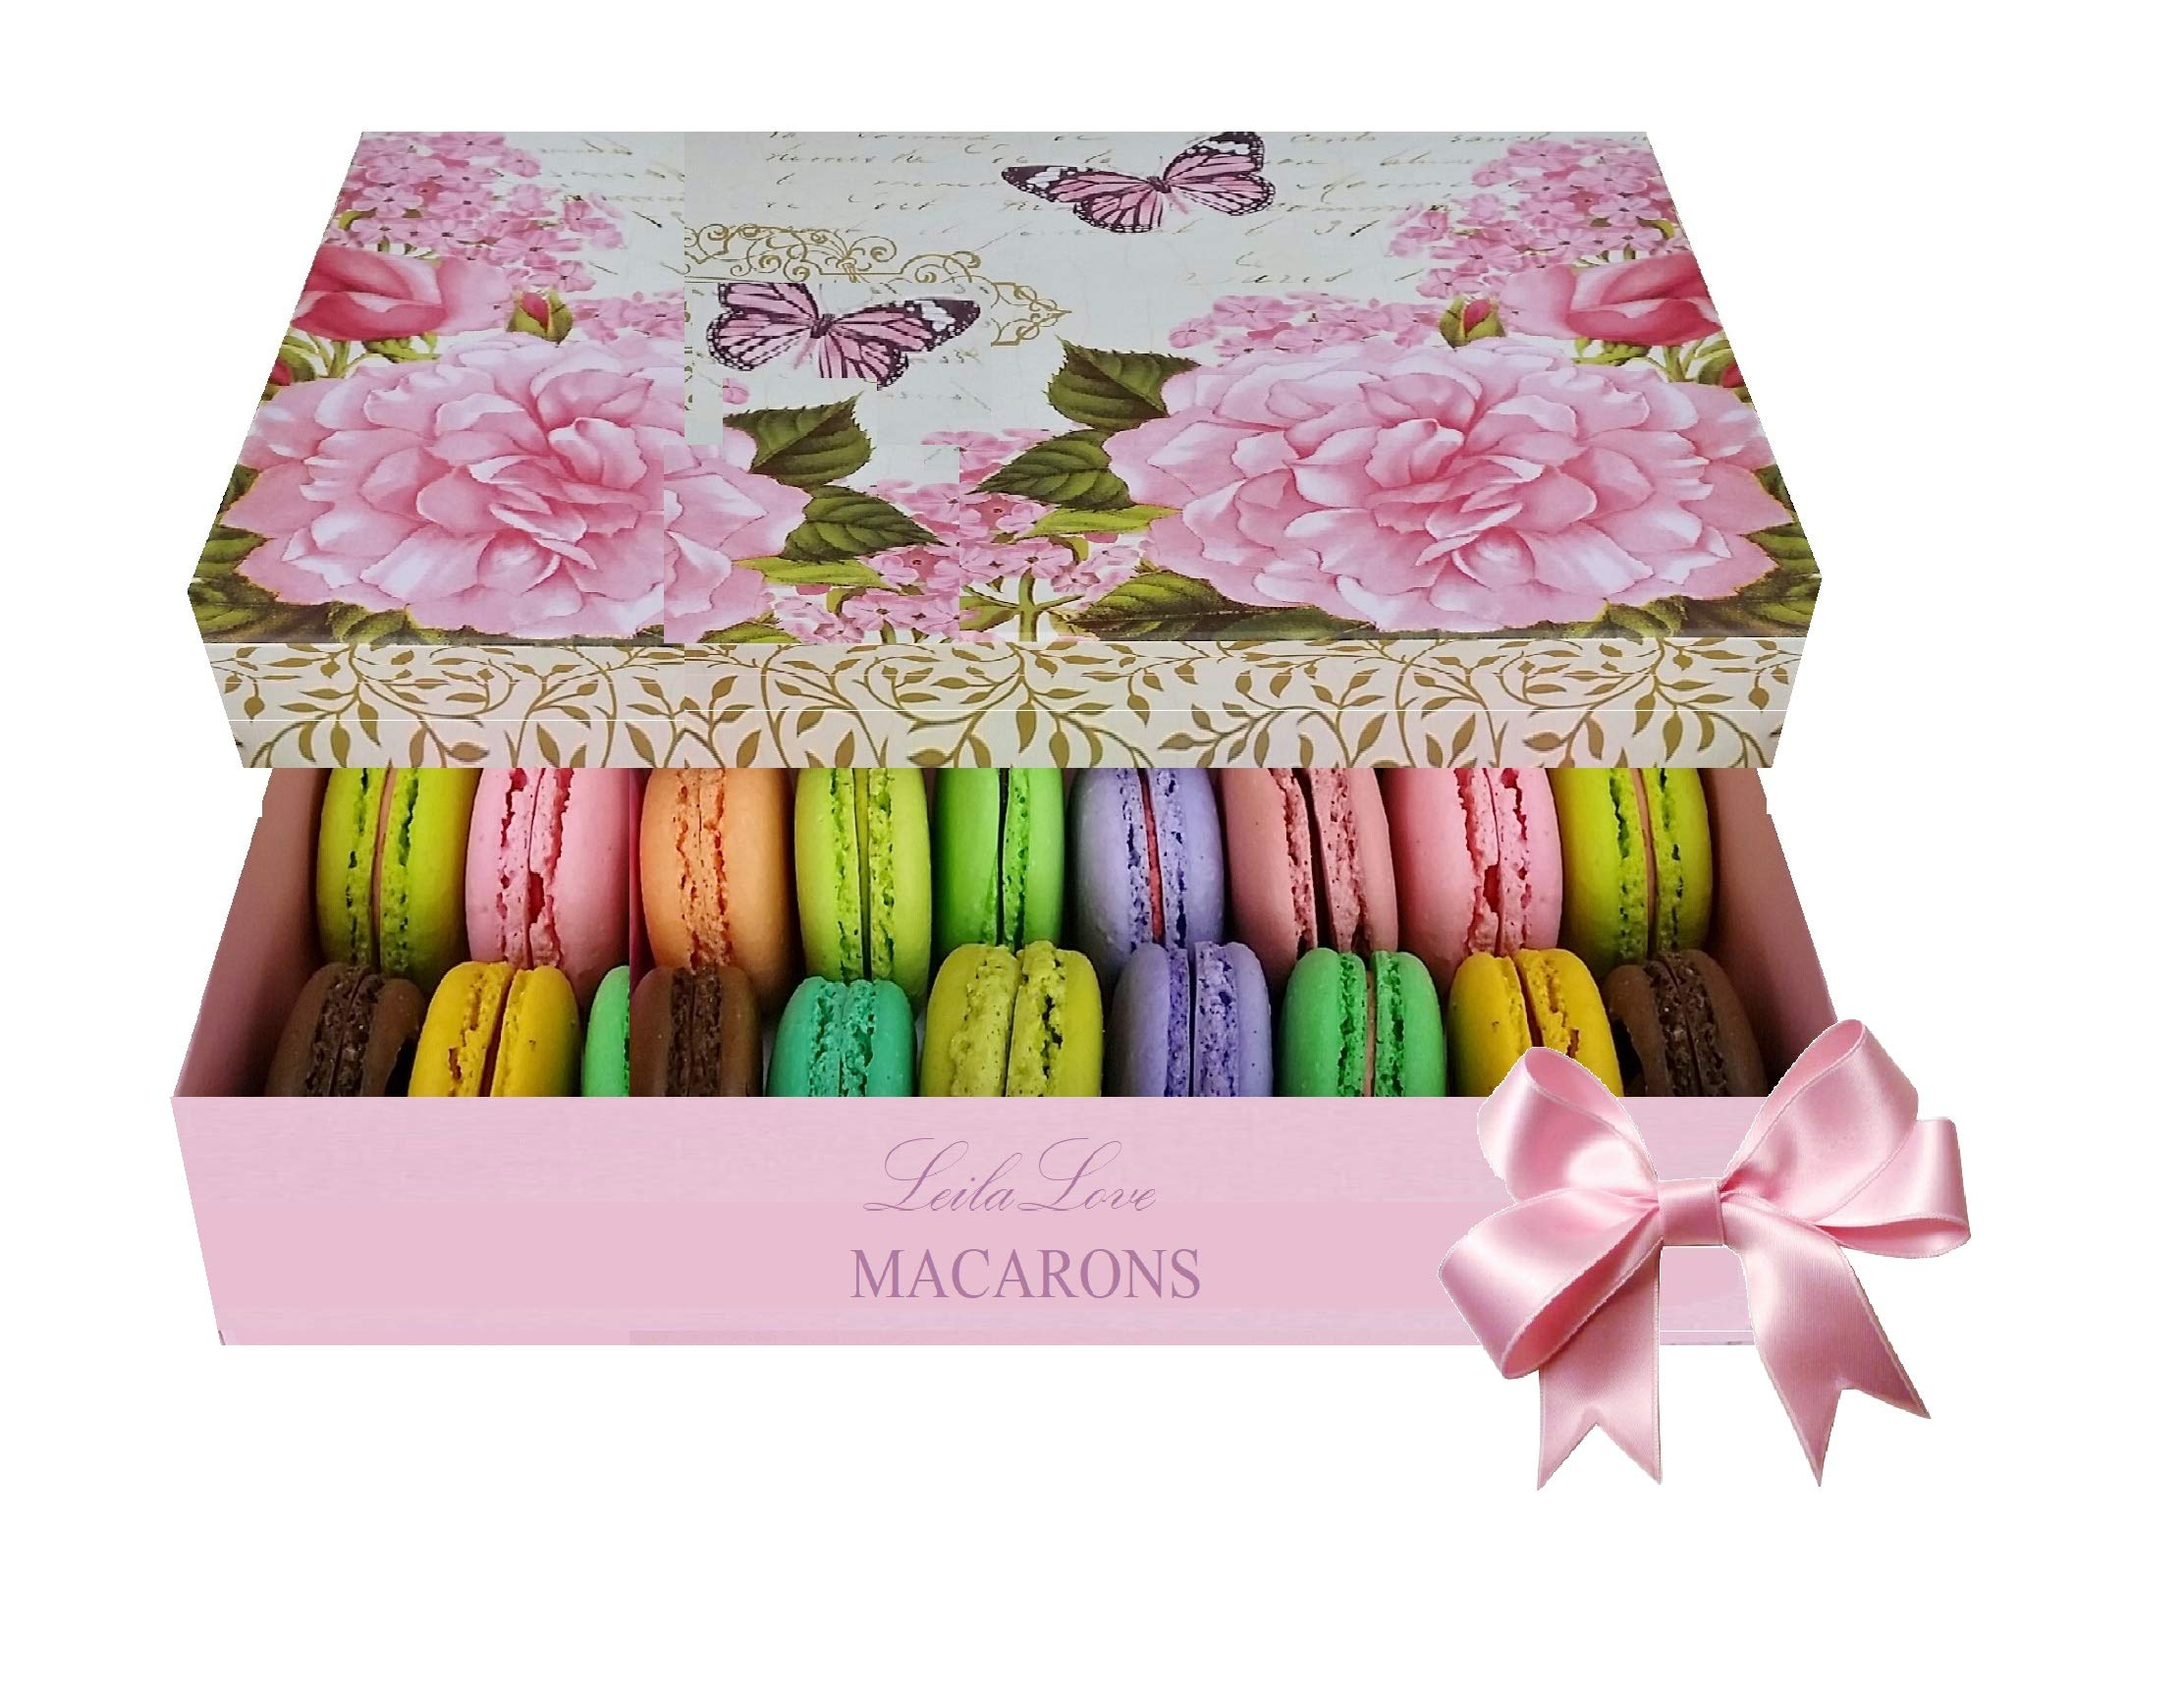 Paris Souvenir - 25 Macaron Varieties - French gift box may vary - Perfect for gifting